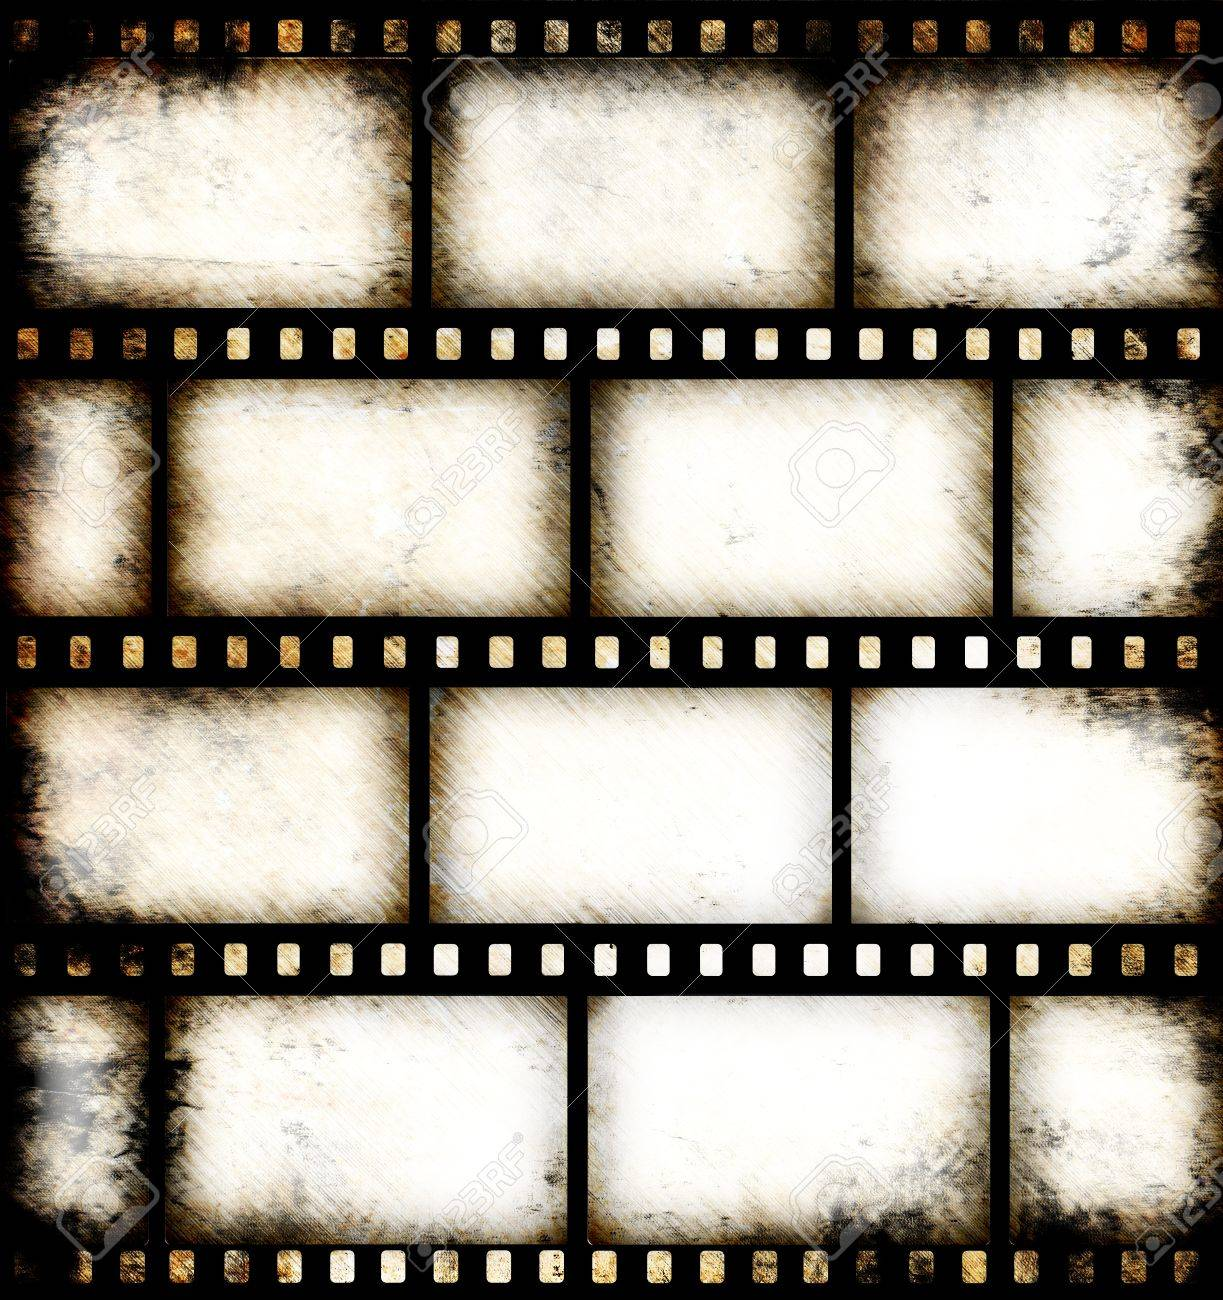 Vintage Background With Film Flame Stock Photo, Picture And ...